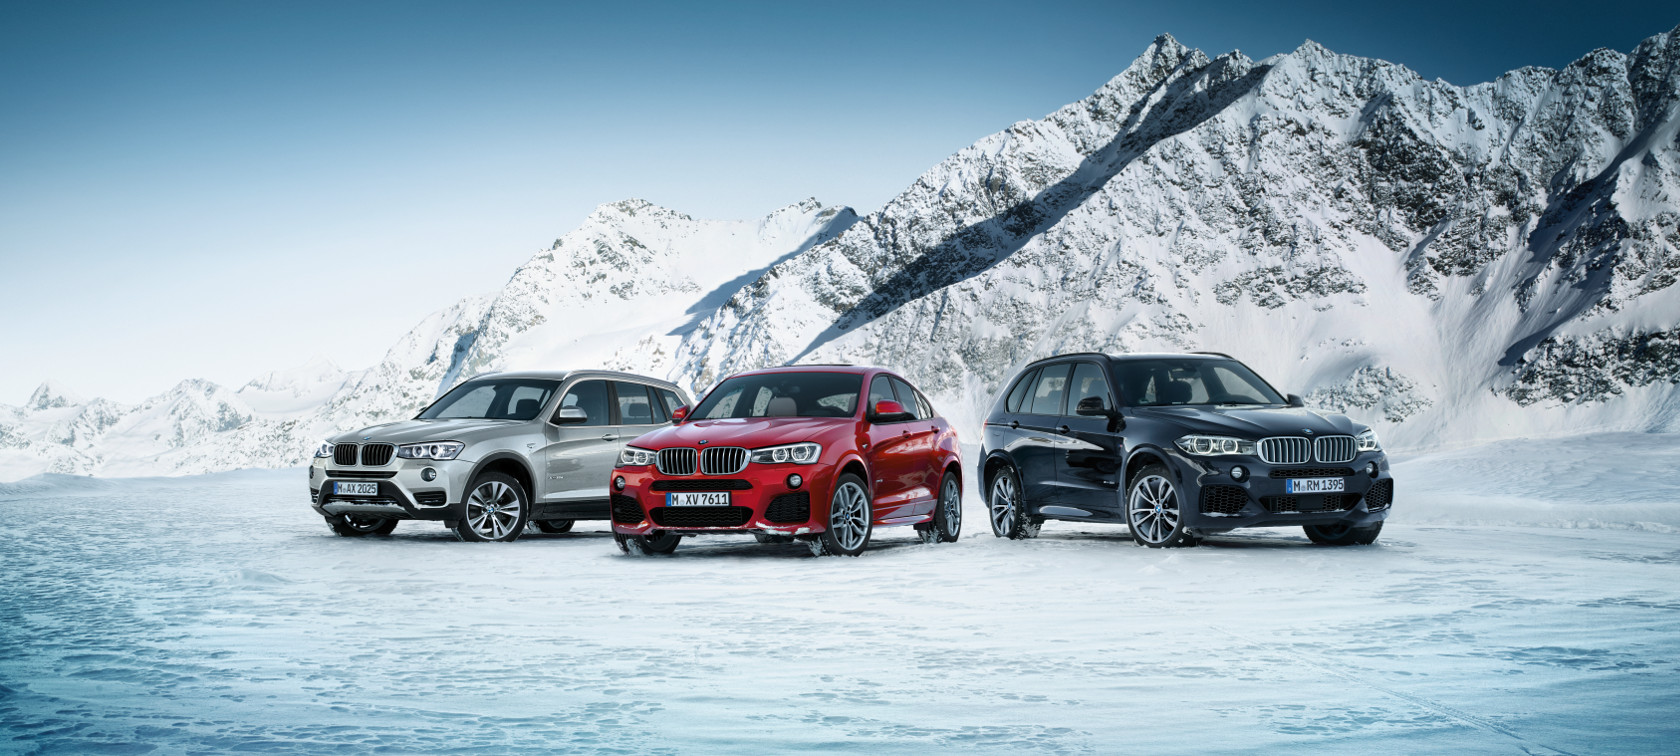 BMW vehicles with xDrive